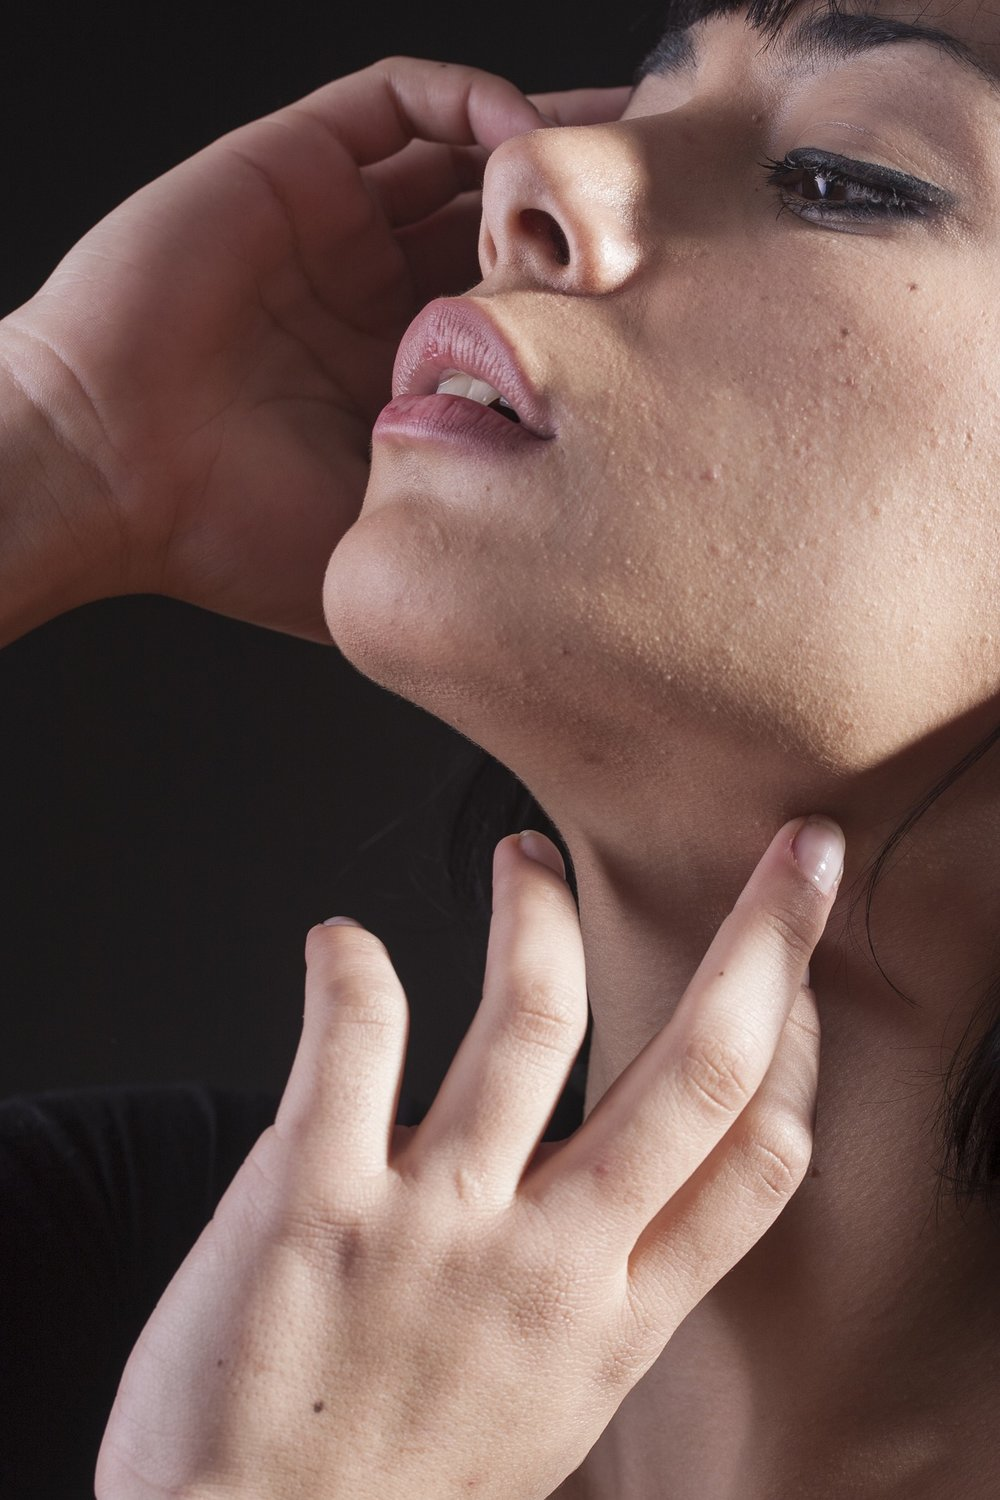 Muscle Tension Dysphonia and Voice Therapy